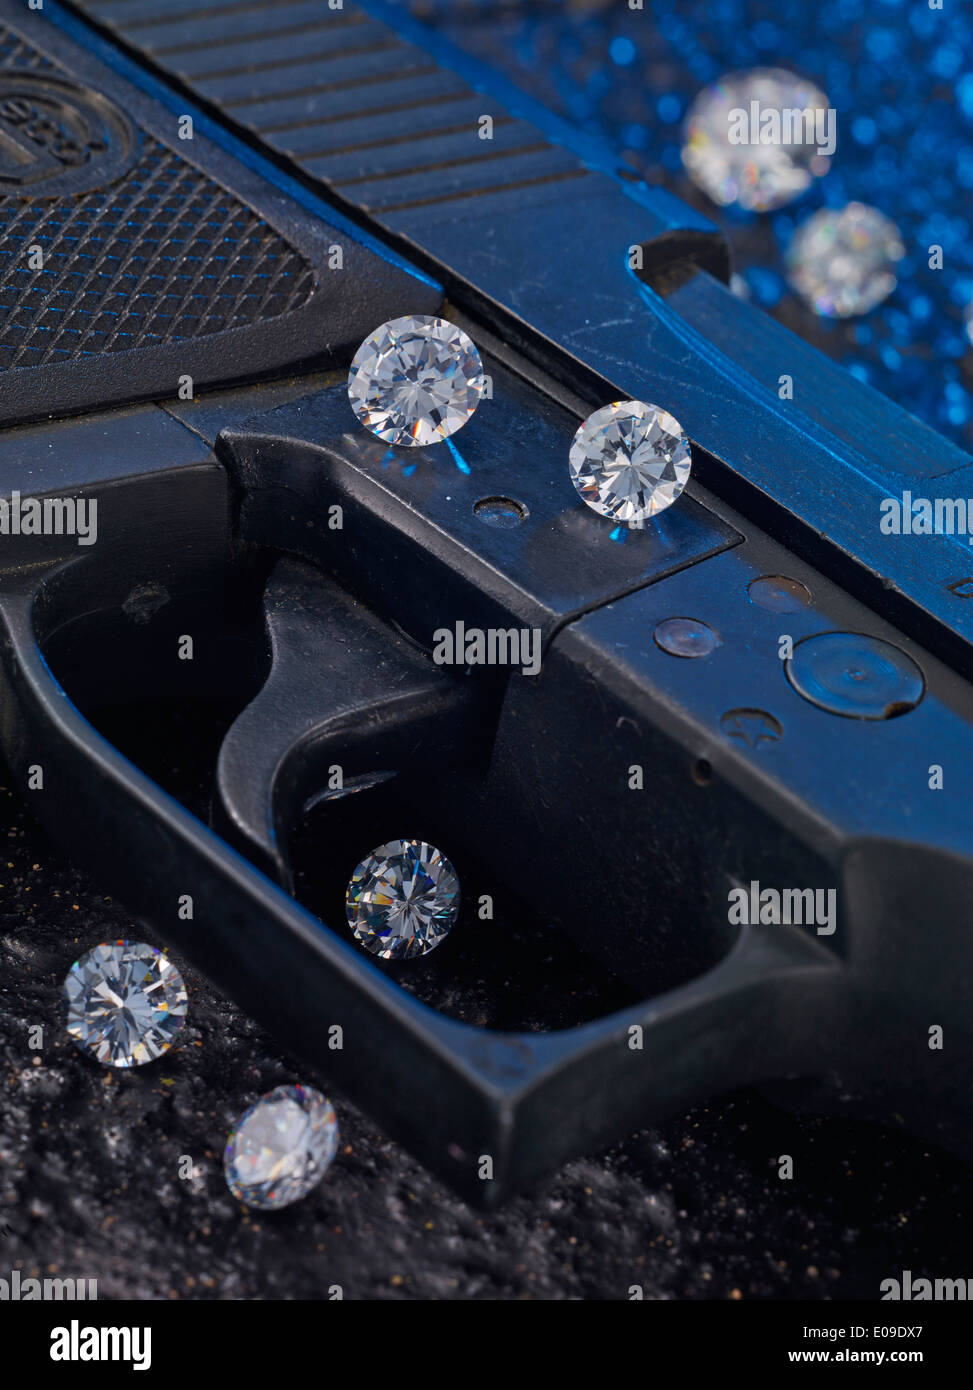 Trigger of pistol with diamonds, close-up - Stock Image